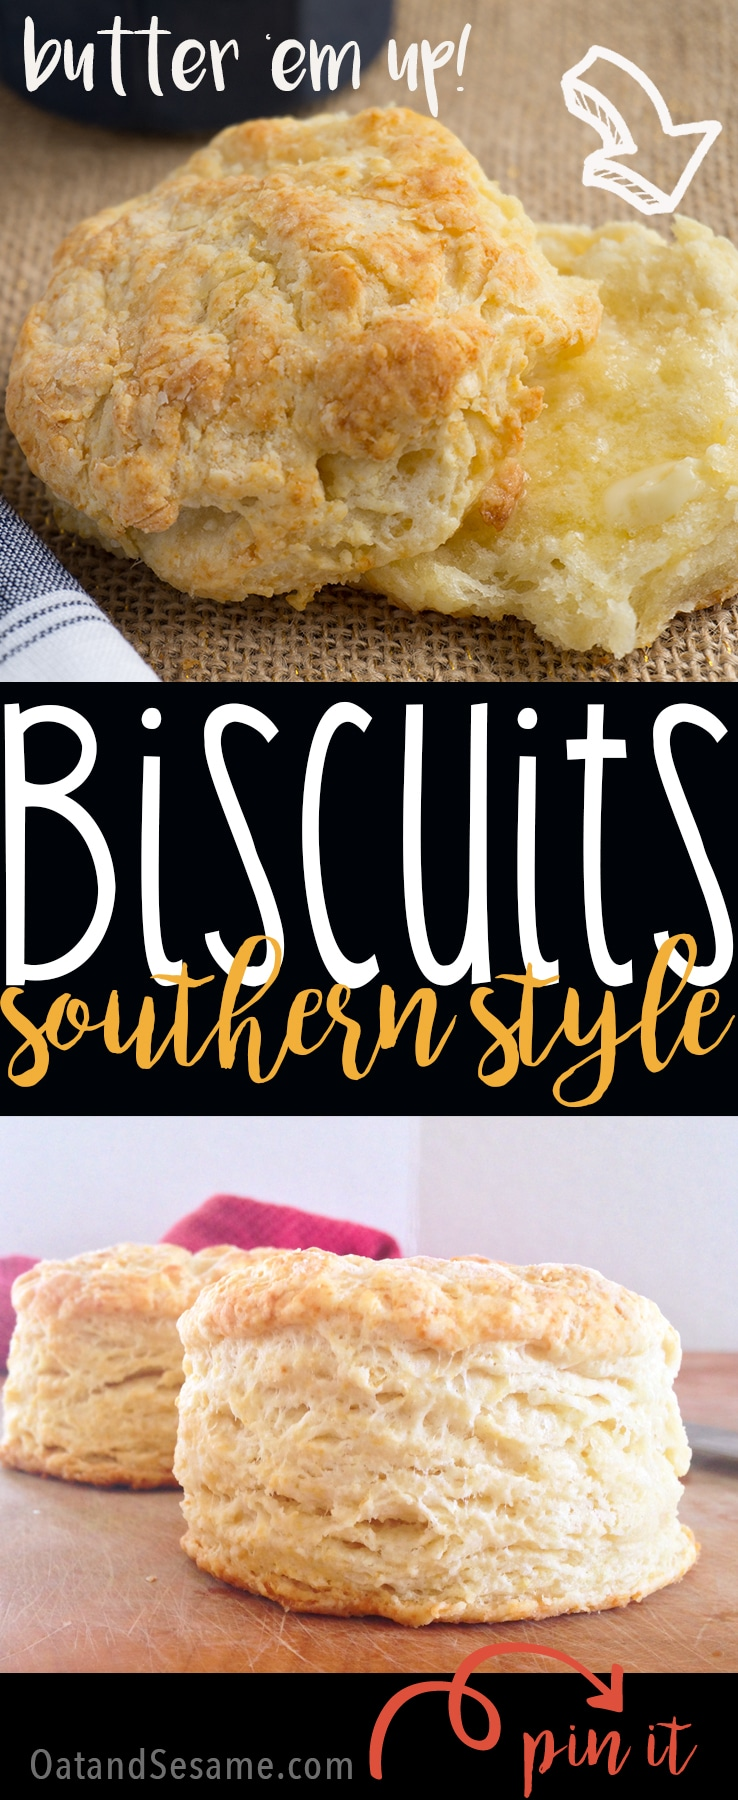 Tall Flaky Traditional Southern Buttermilk Biscuits | #BREAKFAST | #BISCUITS | #Recipes at OatandSesame.com